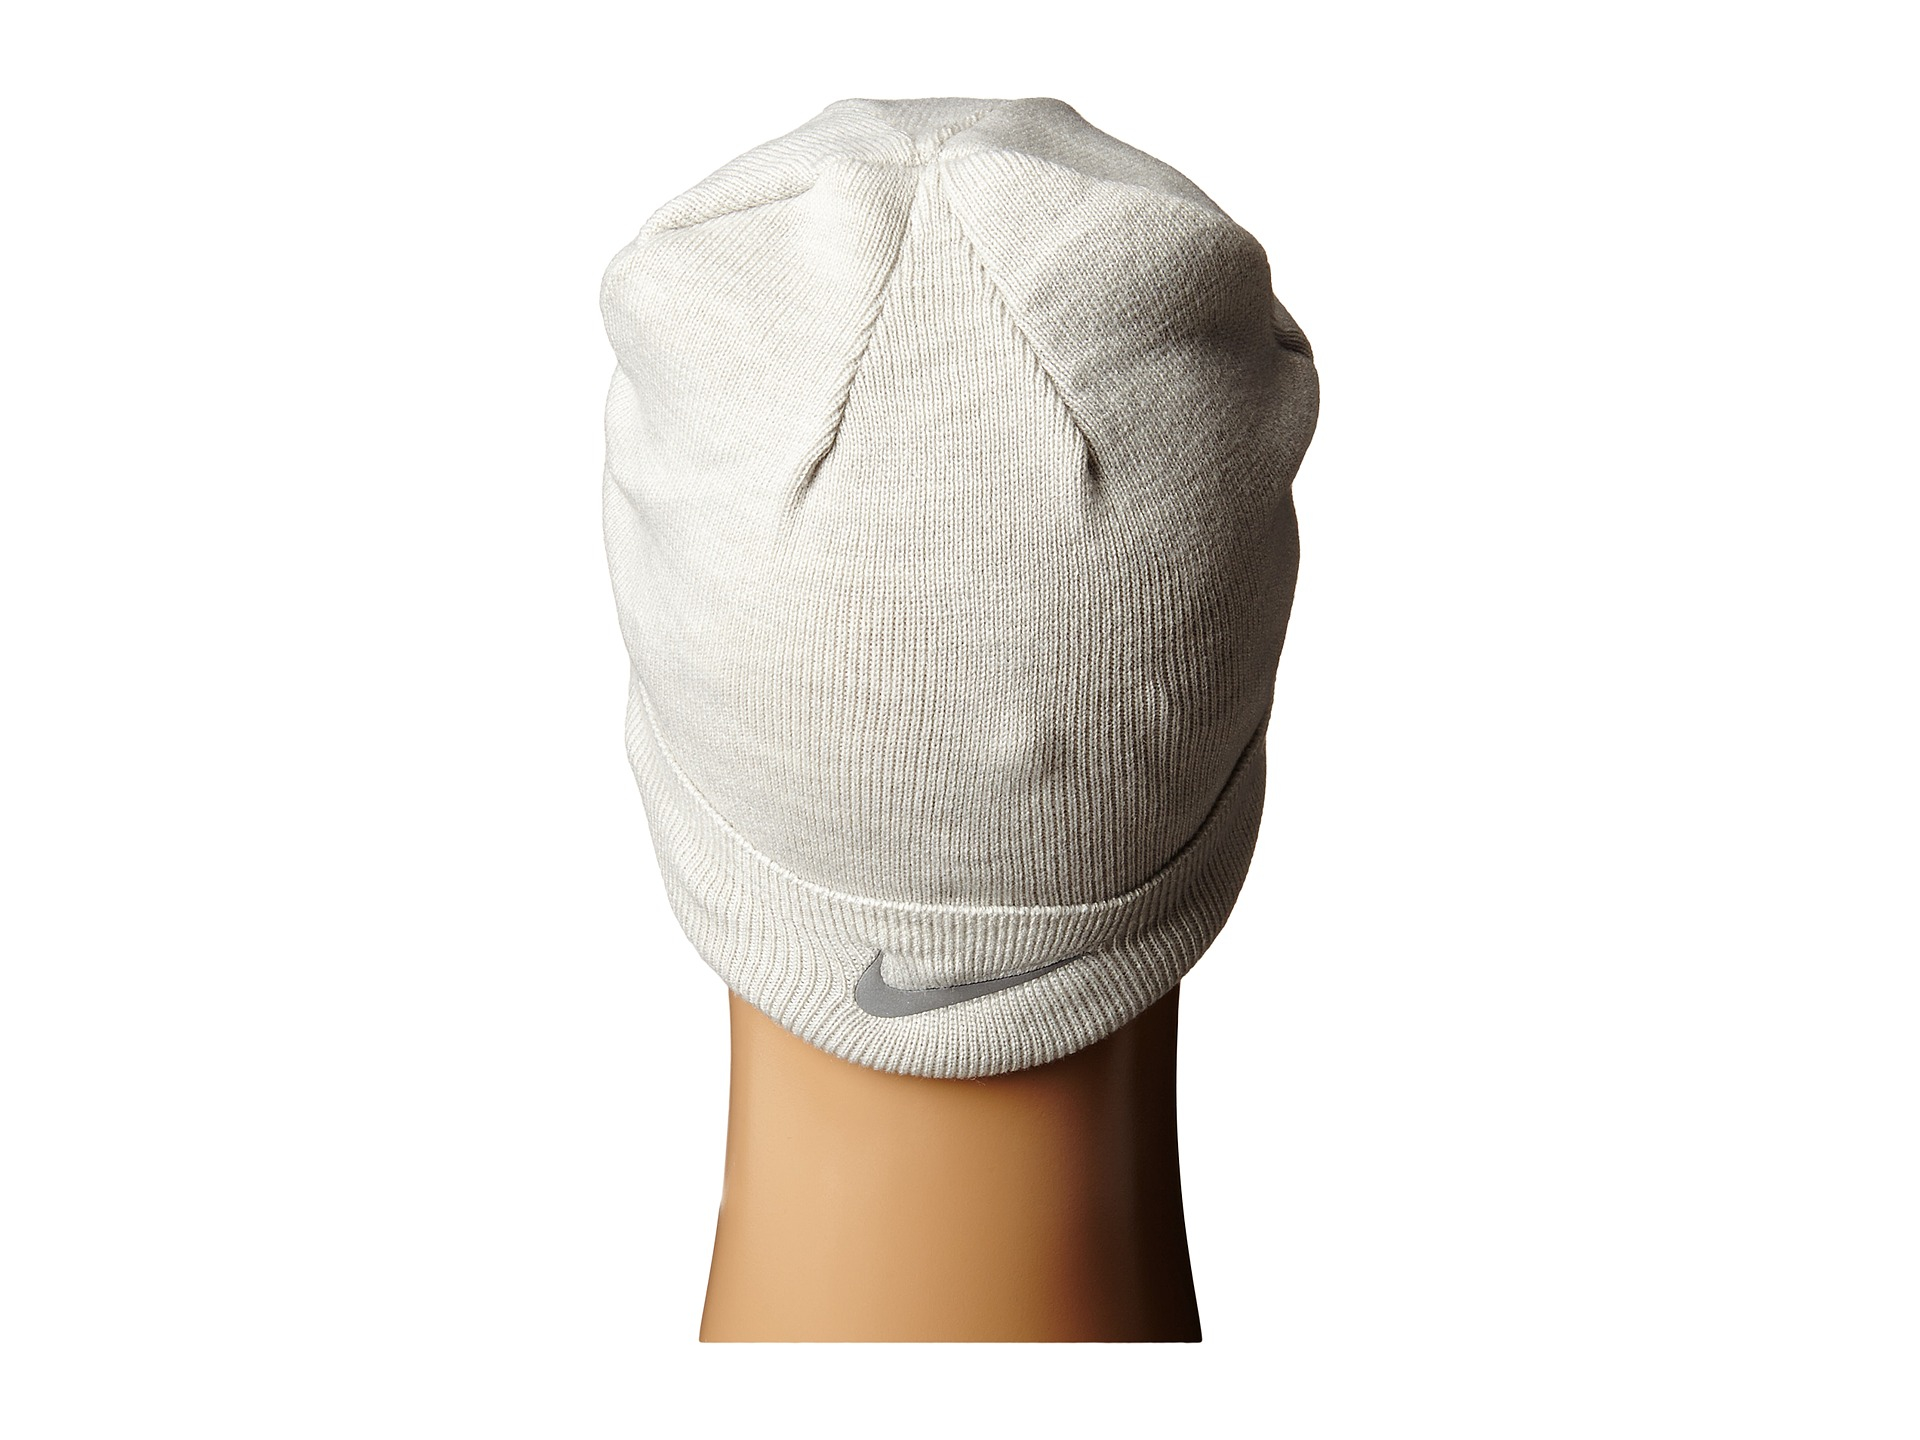 32fe070ed53 ... hat 8c2a0 ebb9a closeout lyst nike run crew radar beanie in gray 23861  aedfc coupon for nike unisex tailwind aerobic ventilated running ...